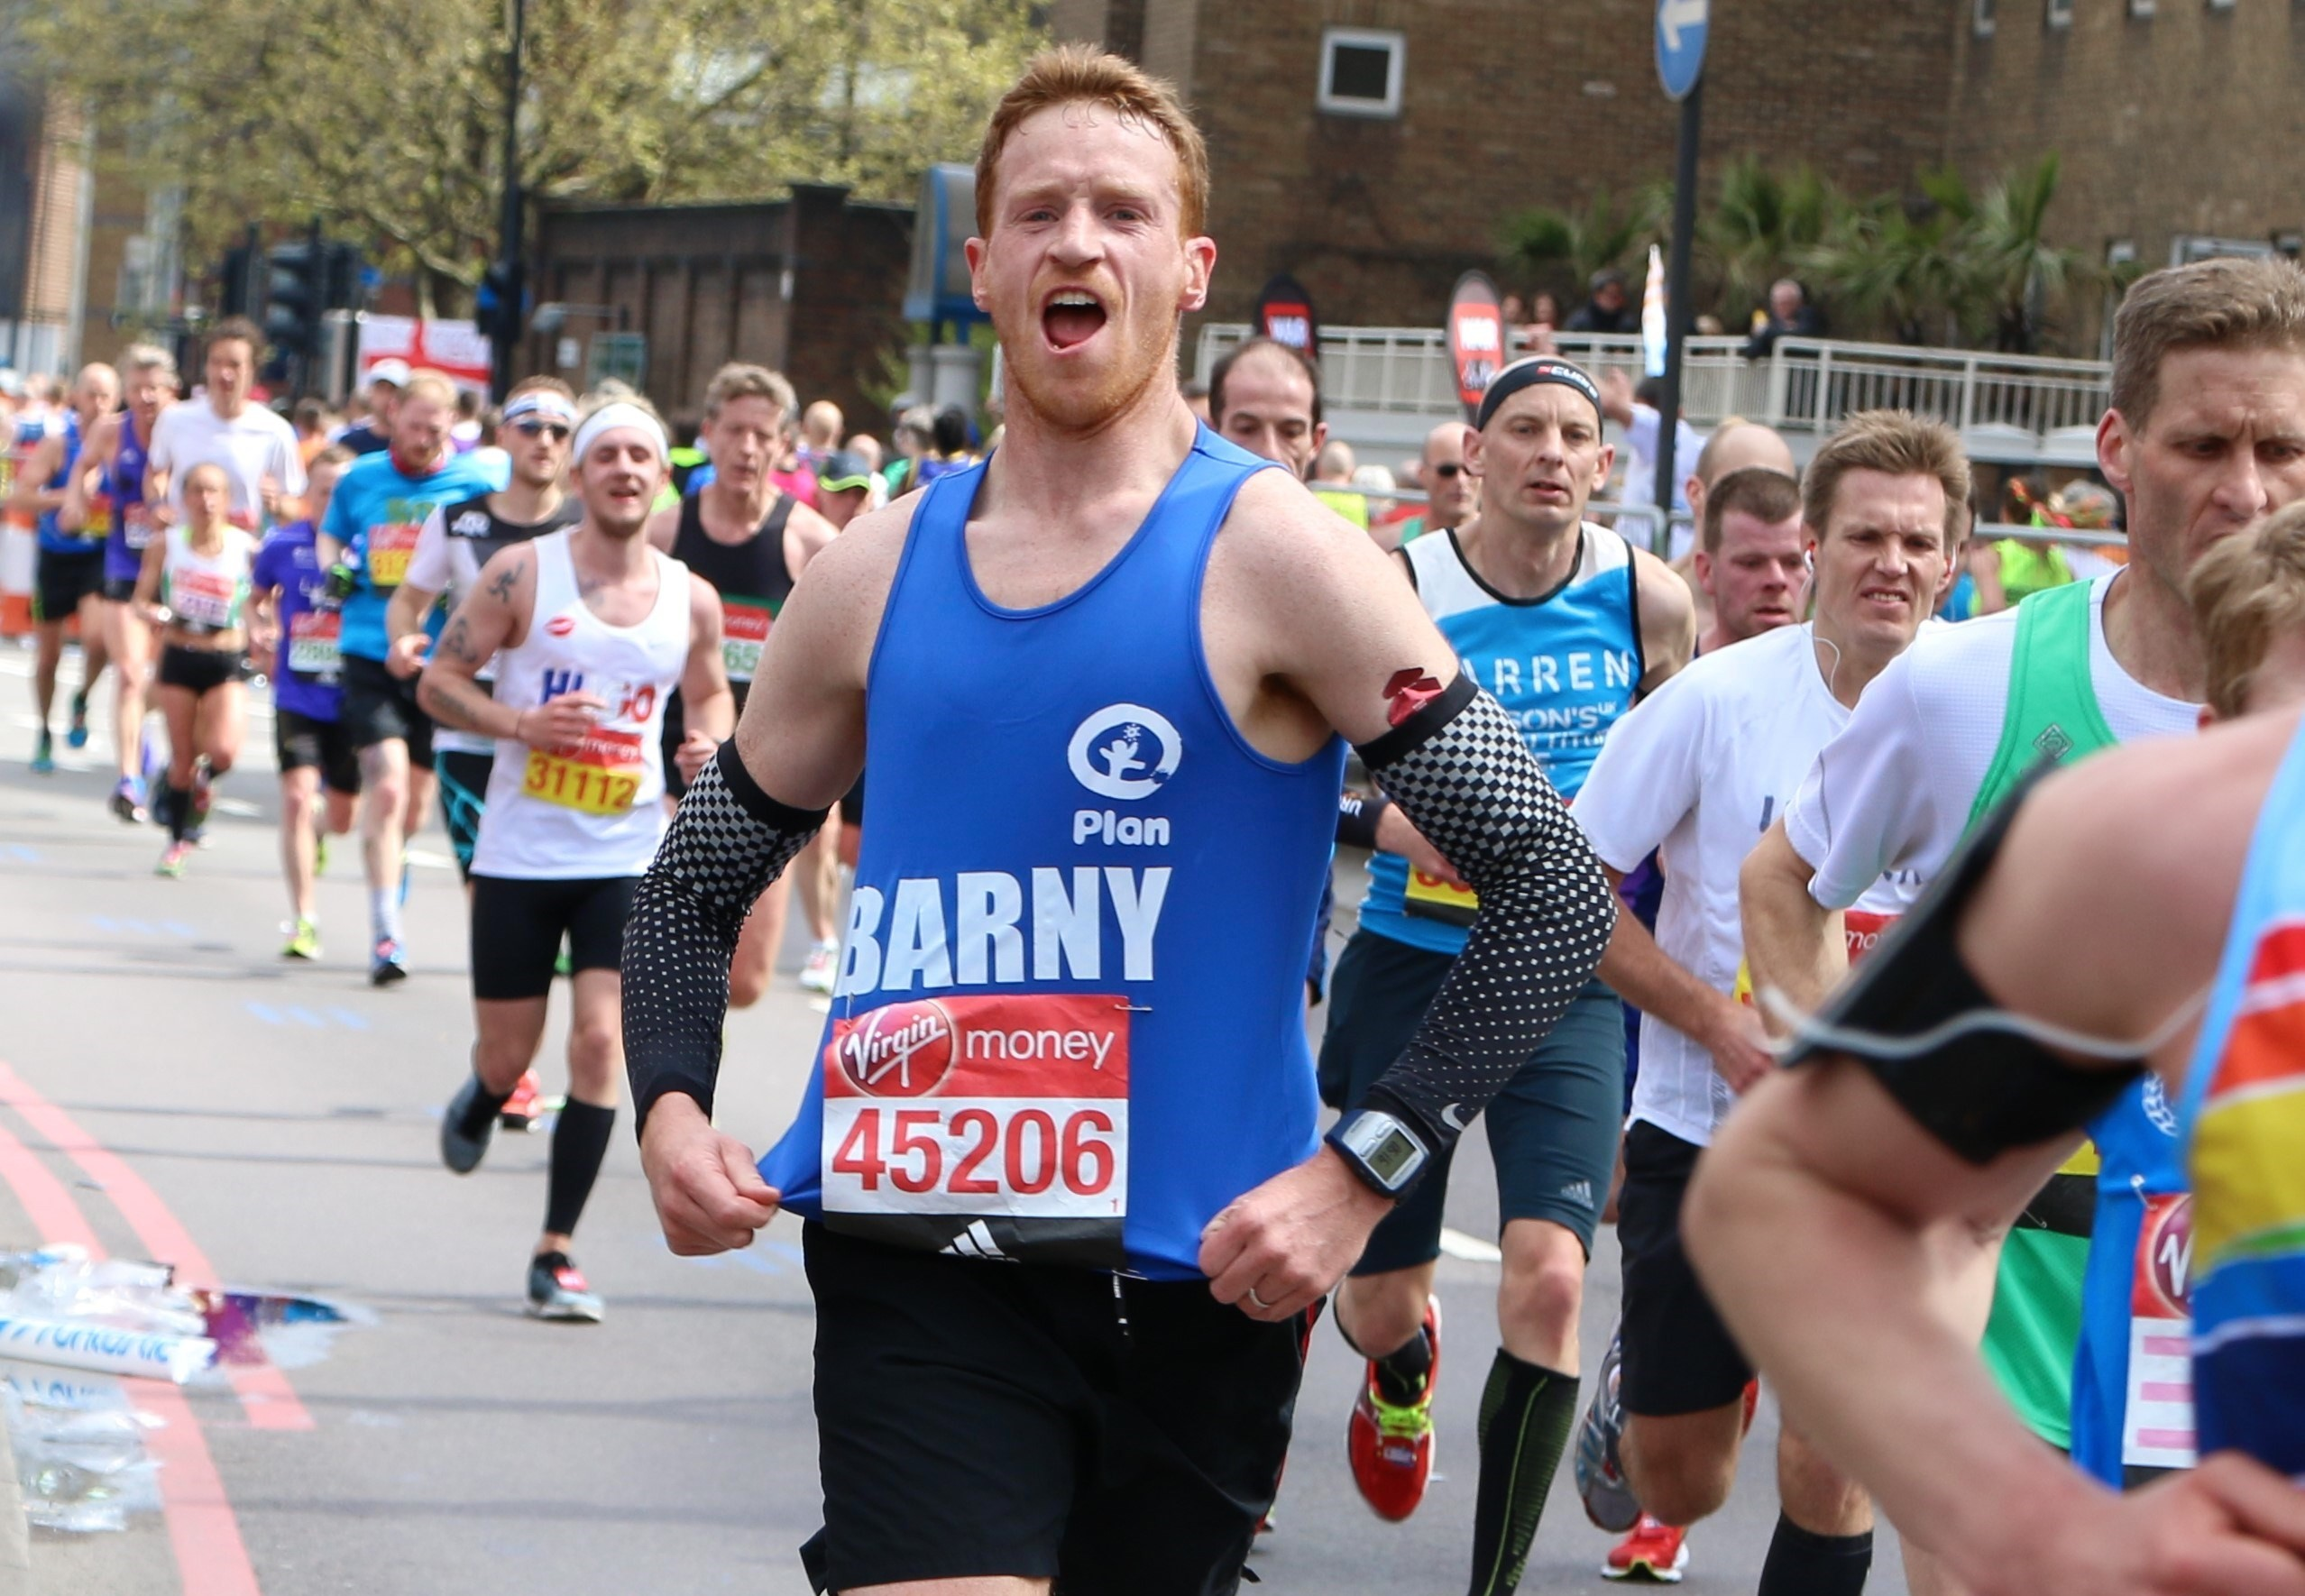 Barny, Plan International UK London marathon runner 2016 image